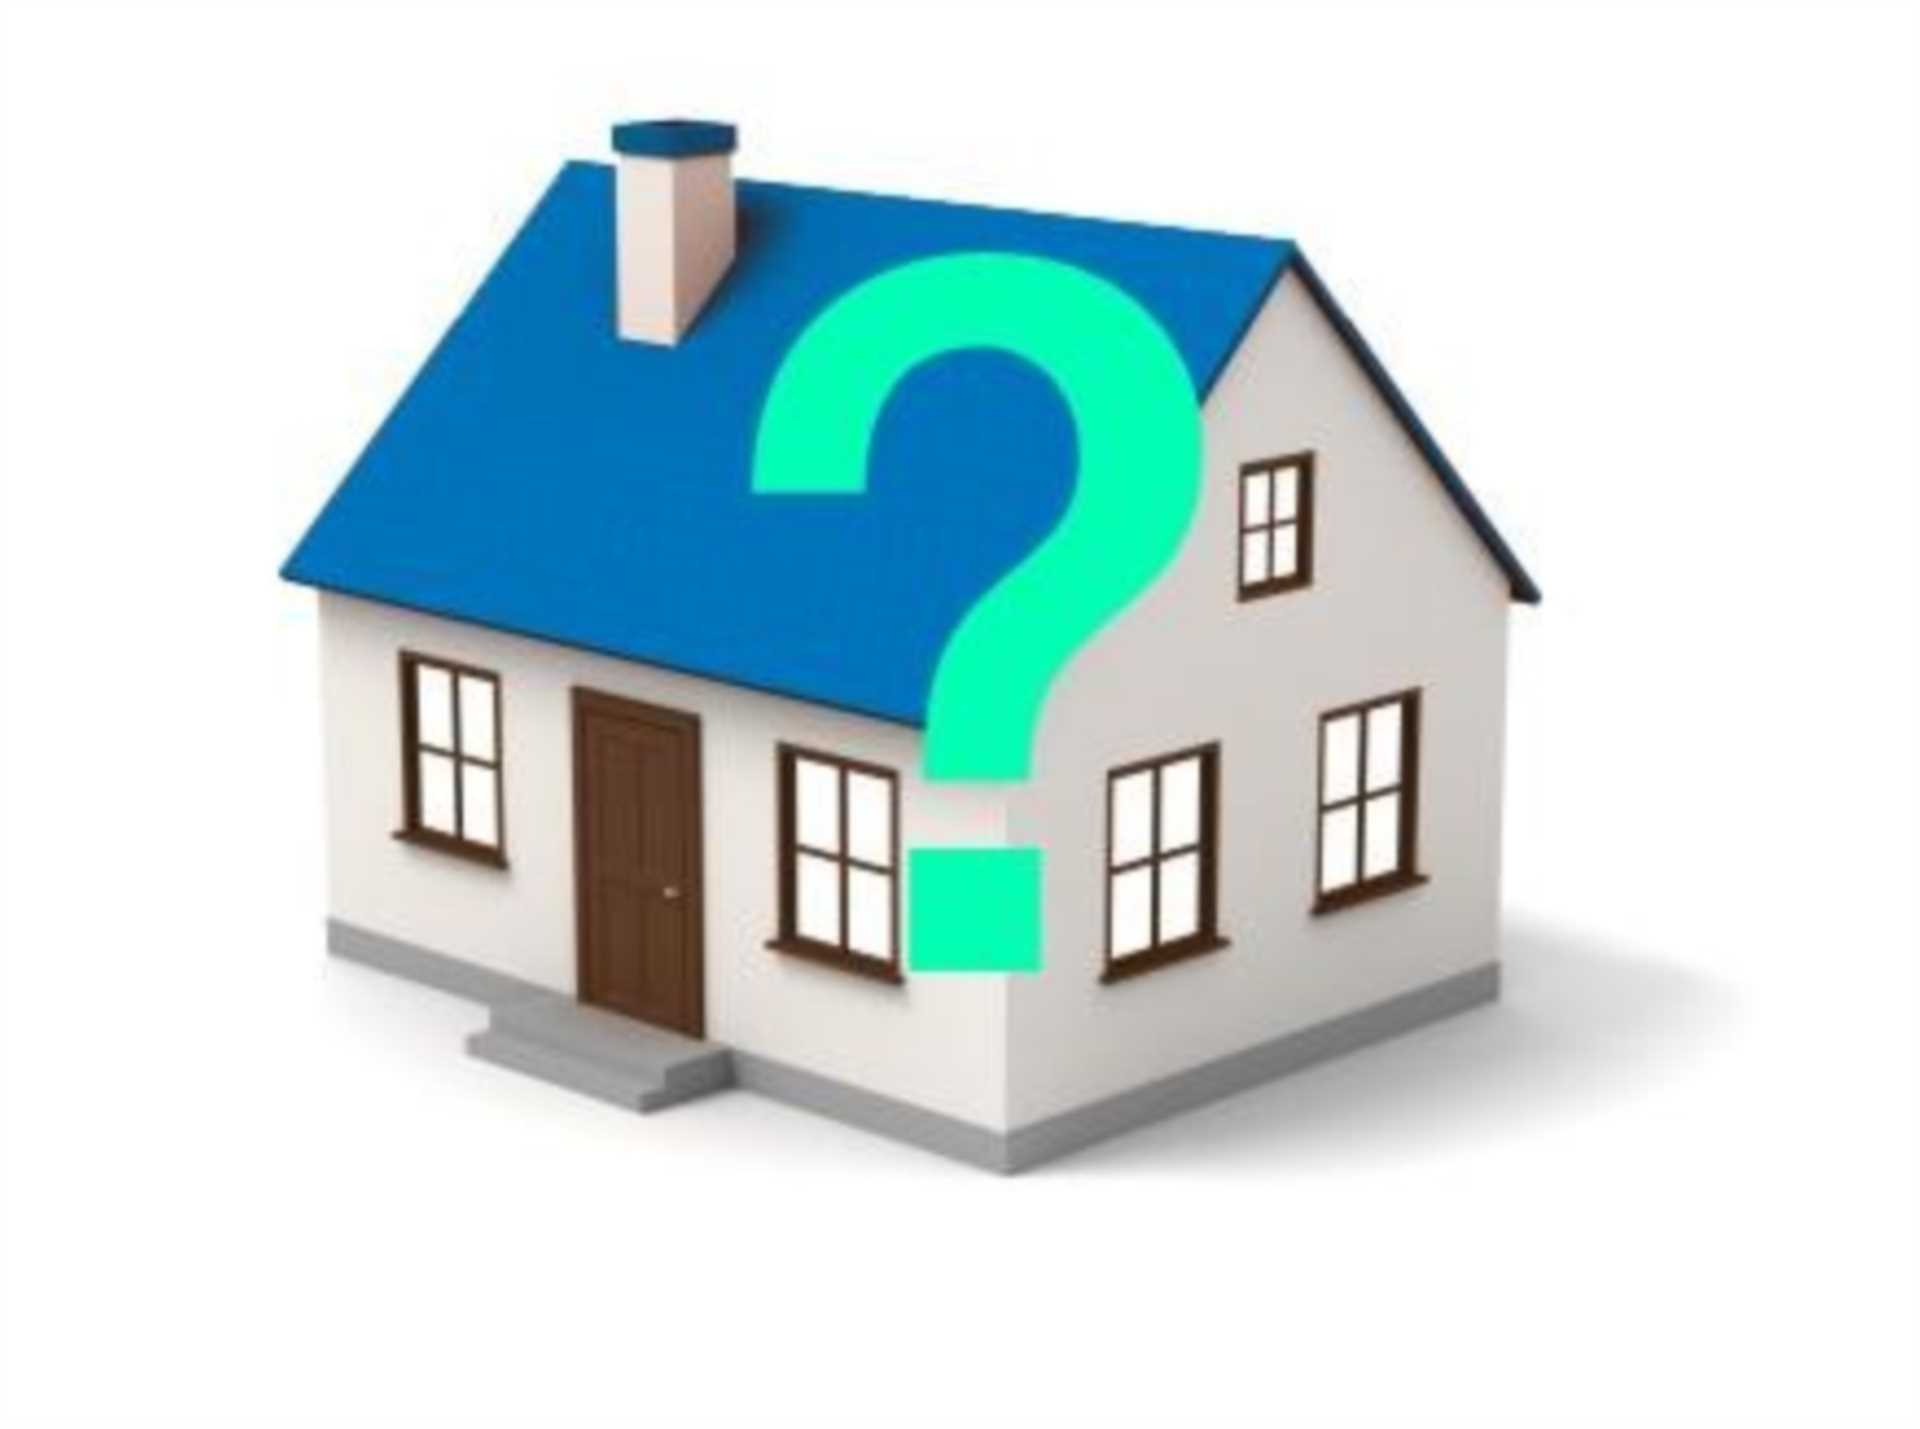 Should I find a suitable house to buy and then put my house on the market or secure a buyer first then start looking?`